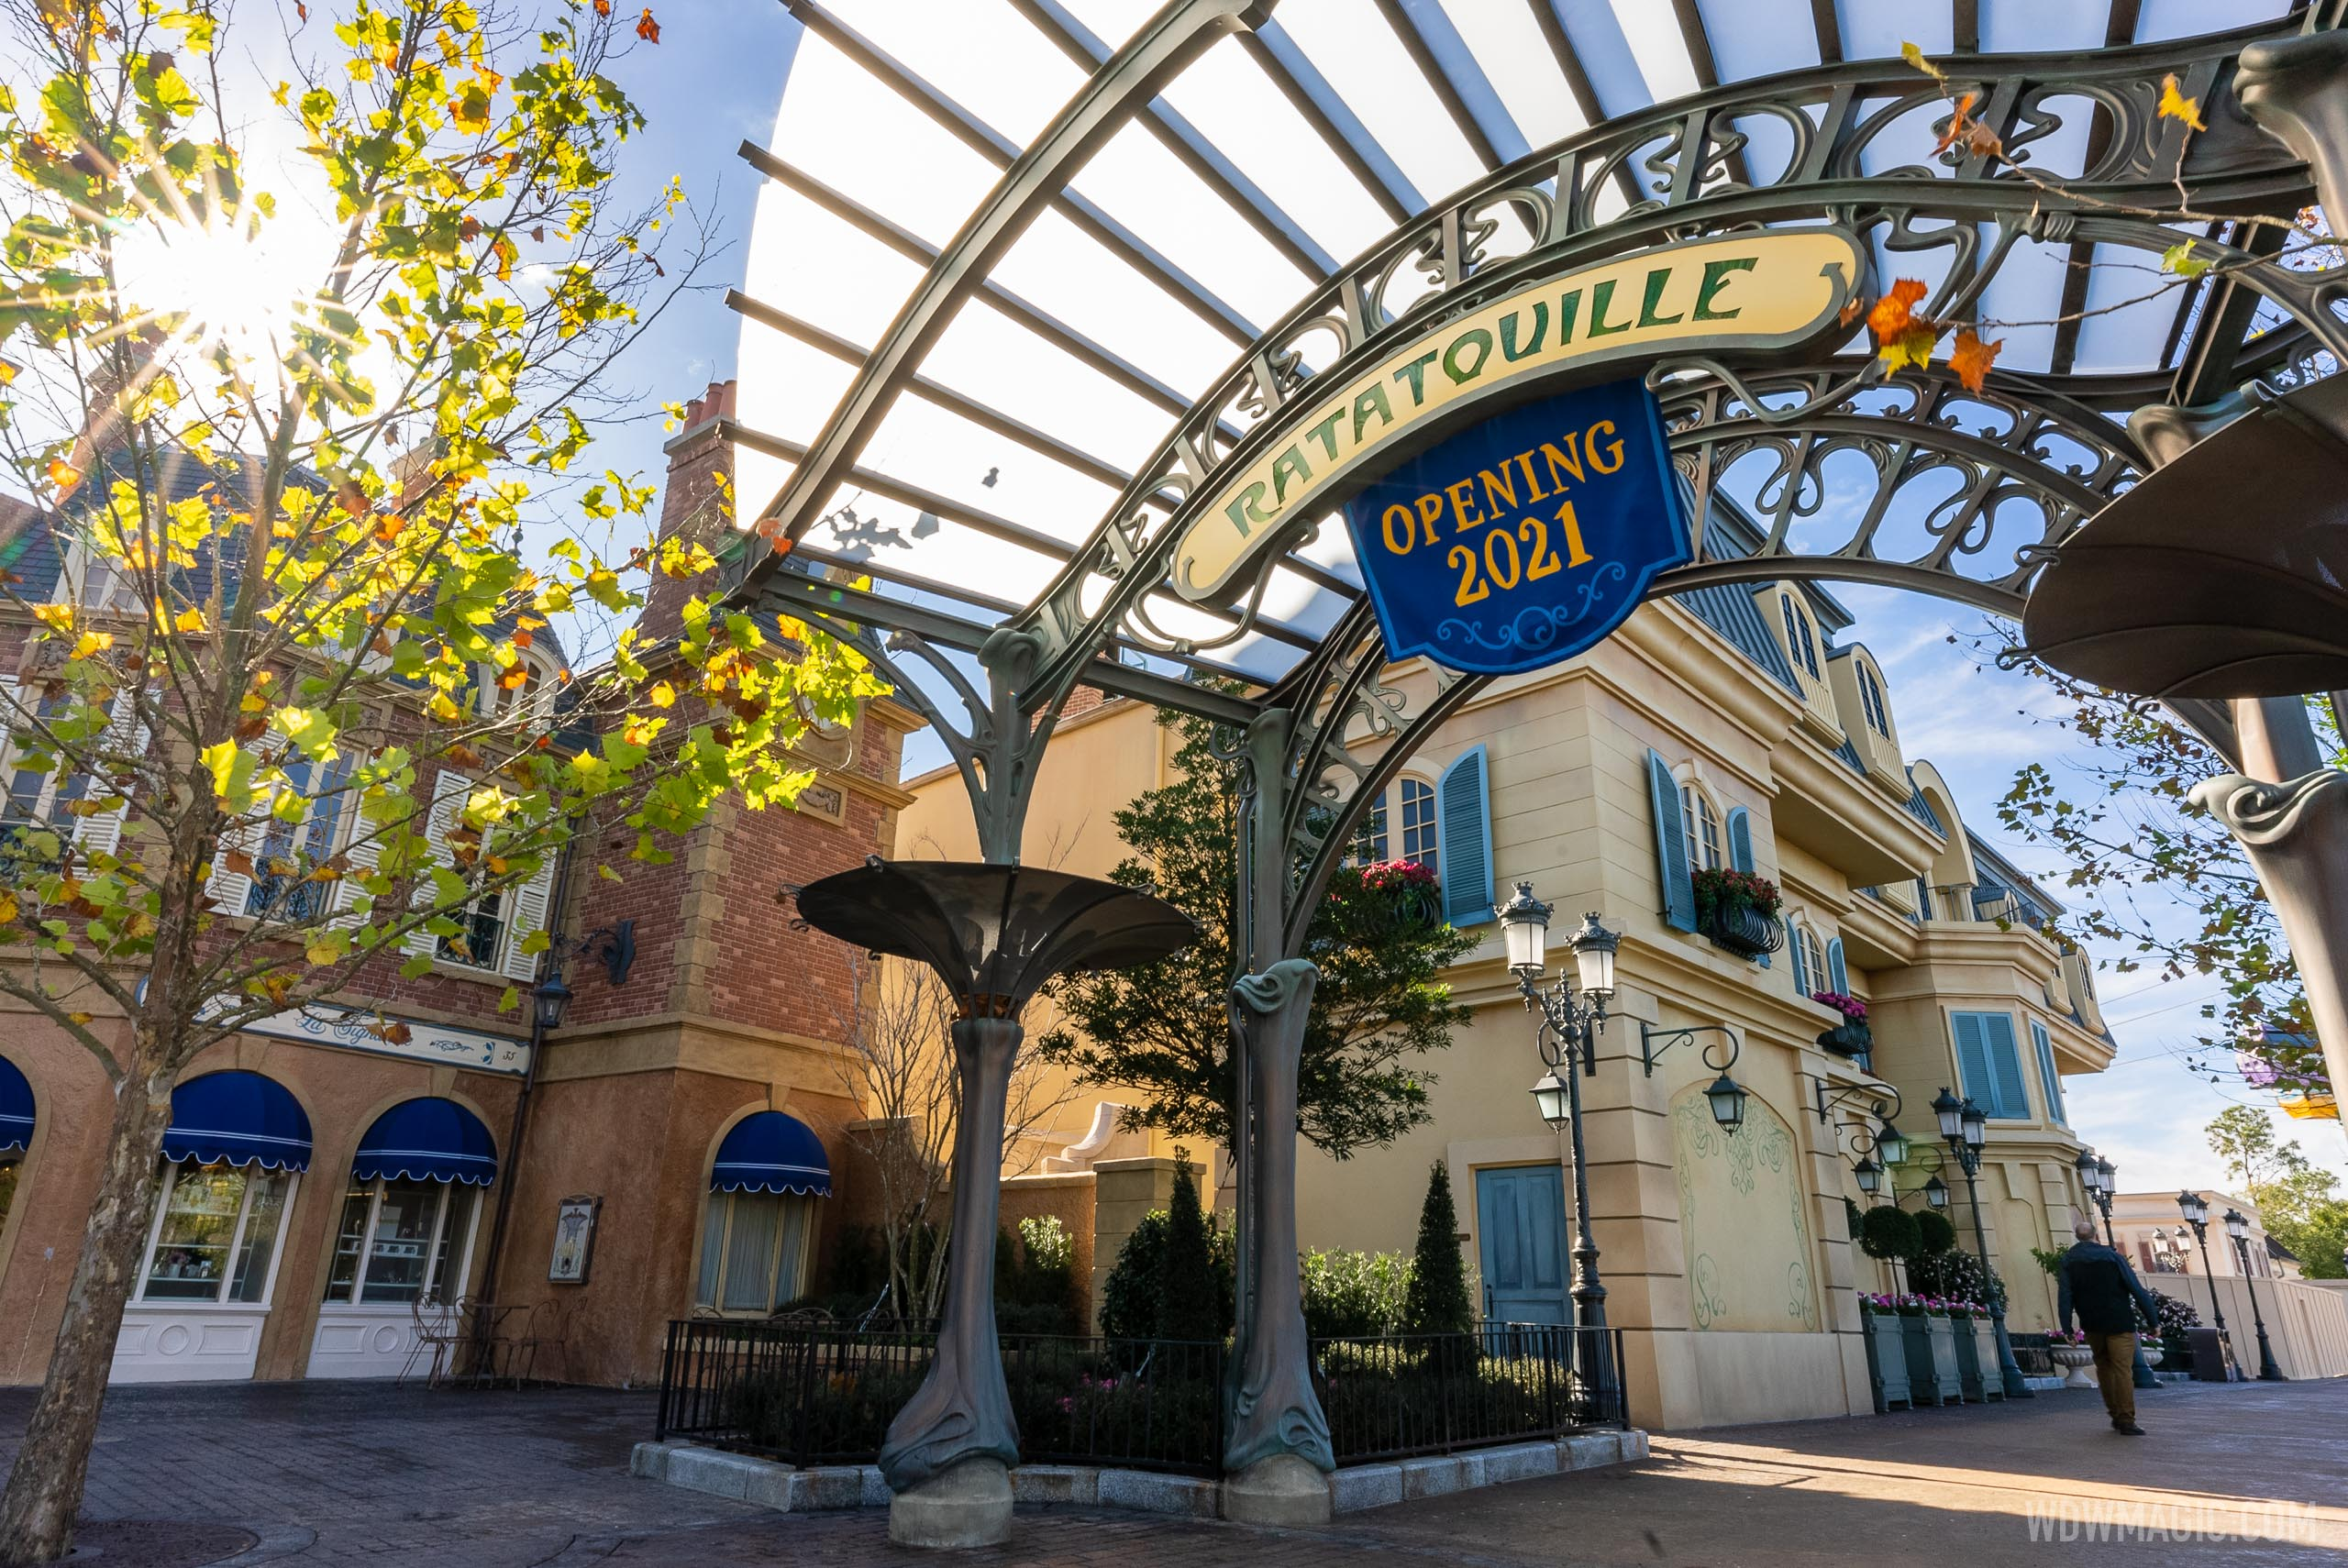 An opening date for Remy's Ratatouille Adventure was not given today